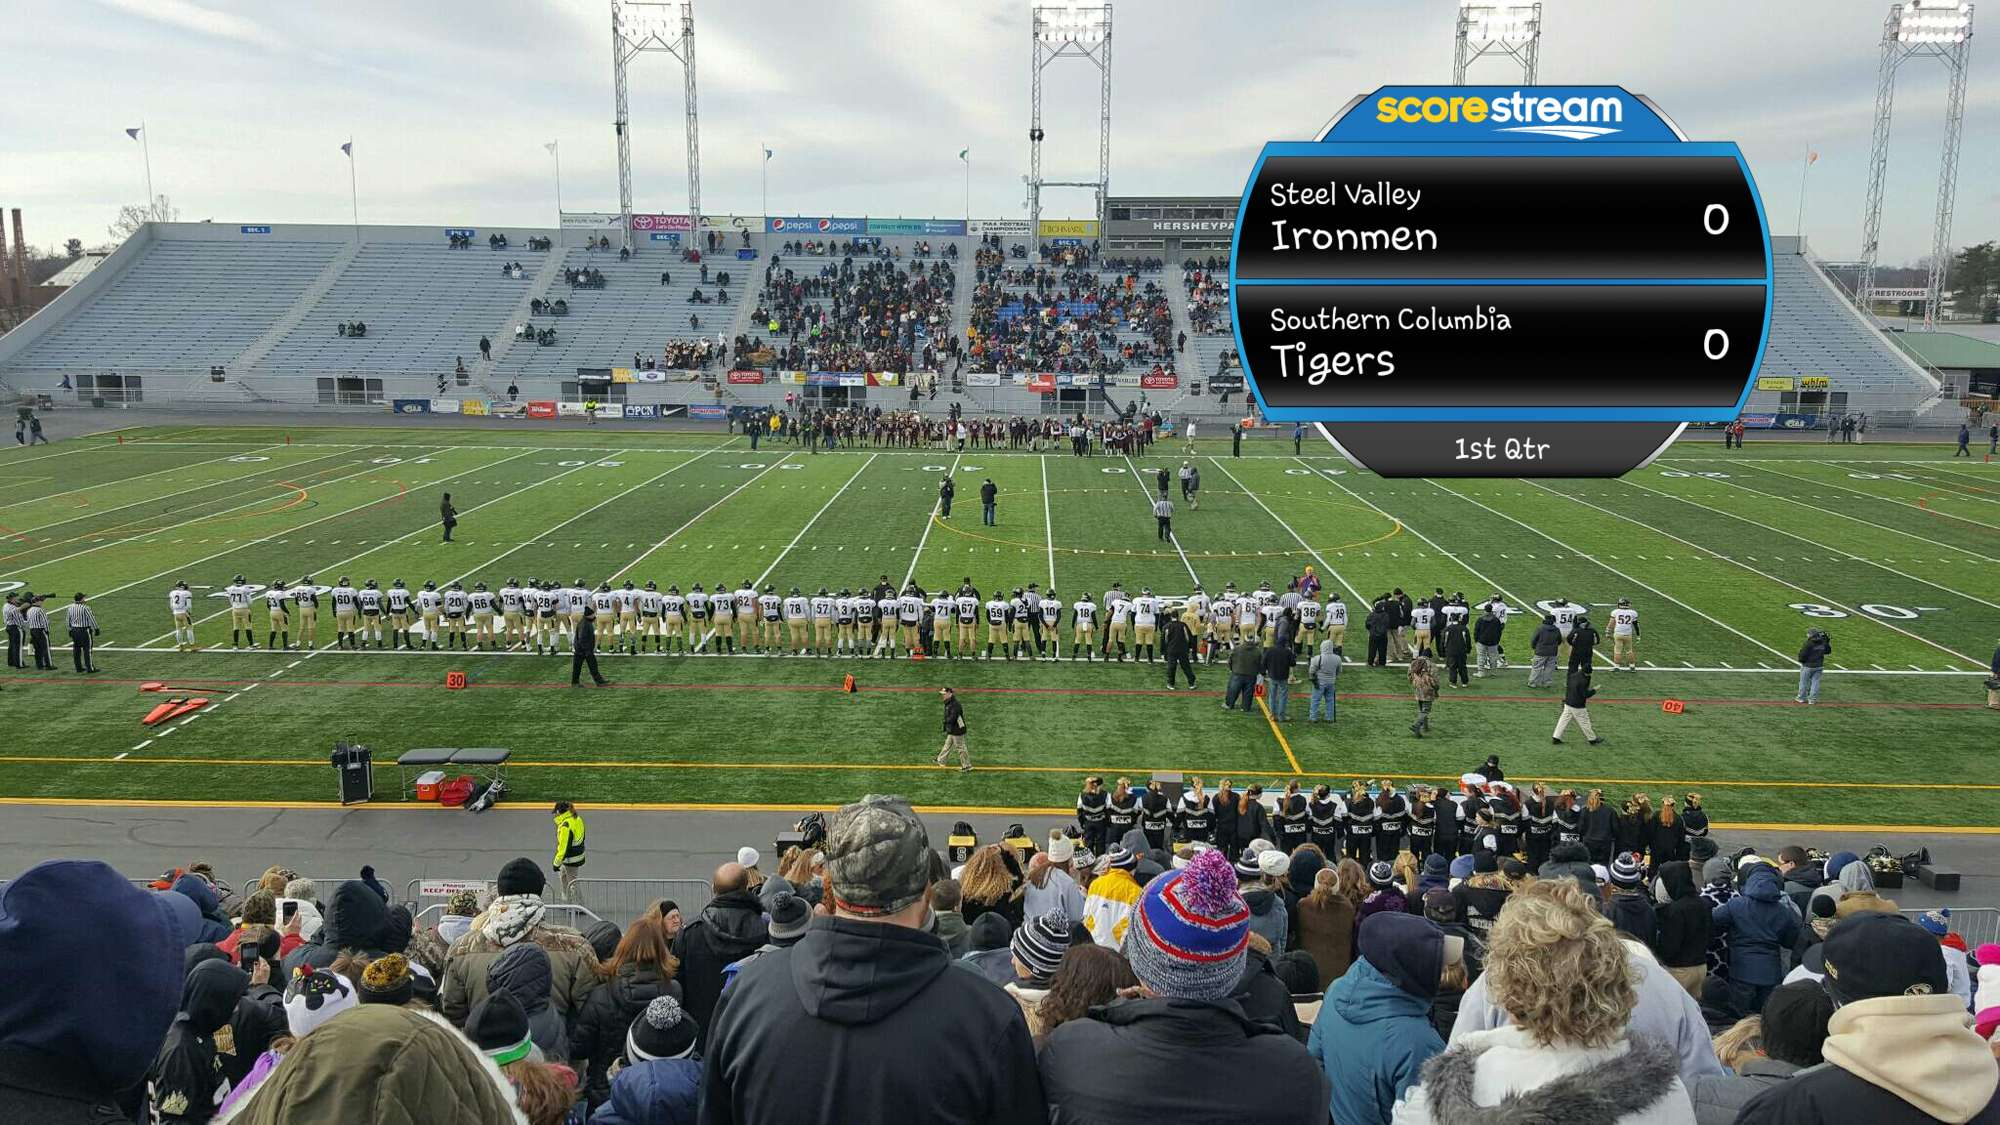 The Steel Valley Ironmen Vs The Southern Columbia Tigers Scorestream